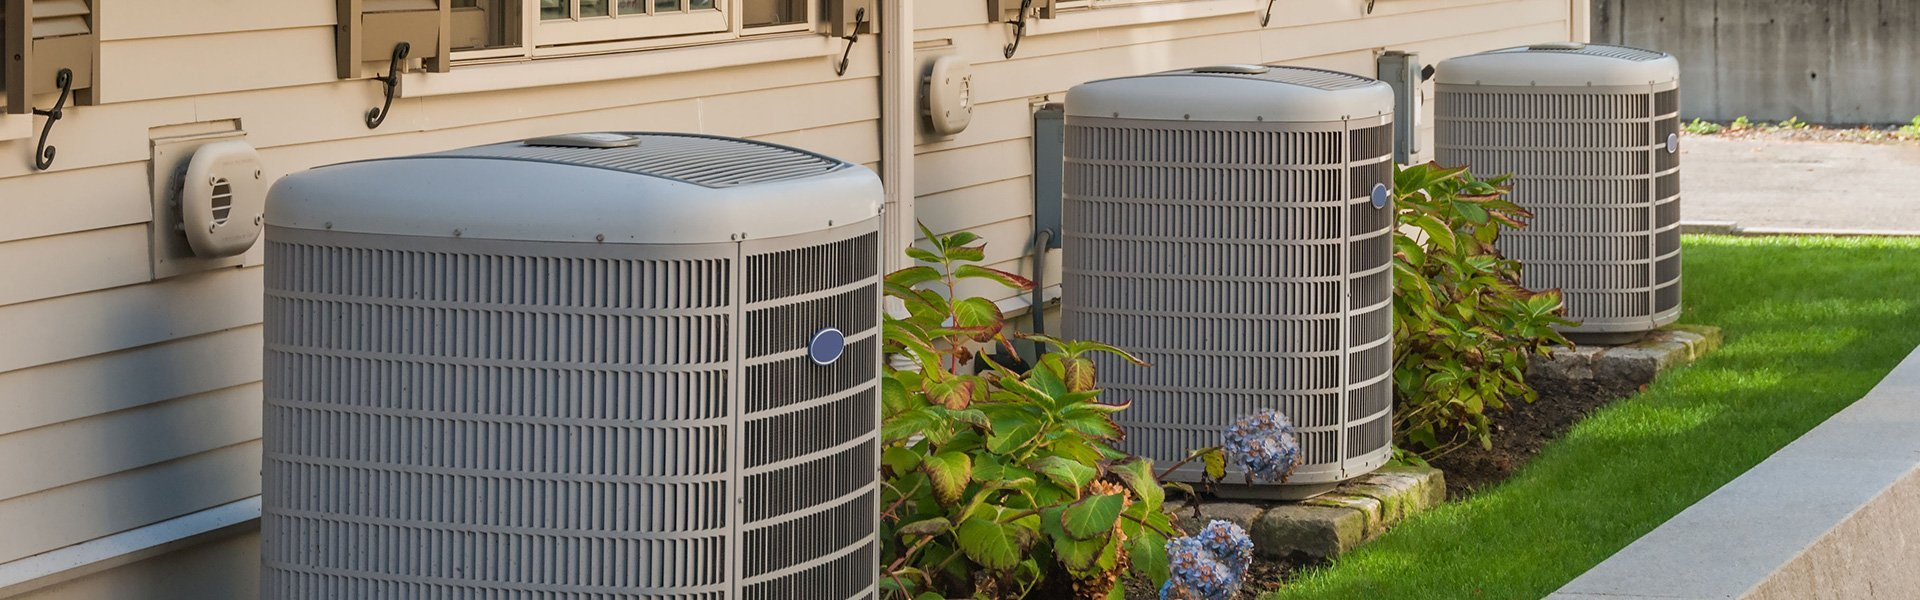 Unger 39 S Heating And Air Conditioning Inc Garden City Ks